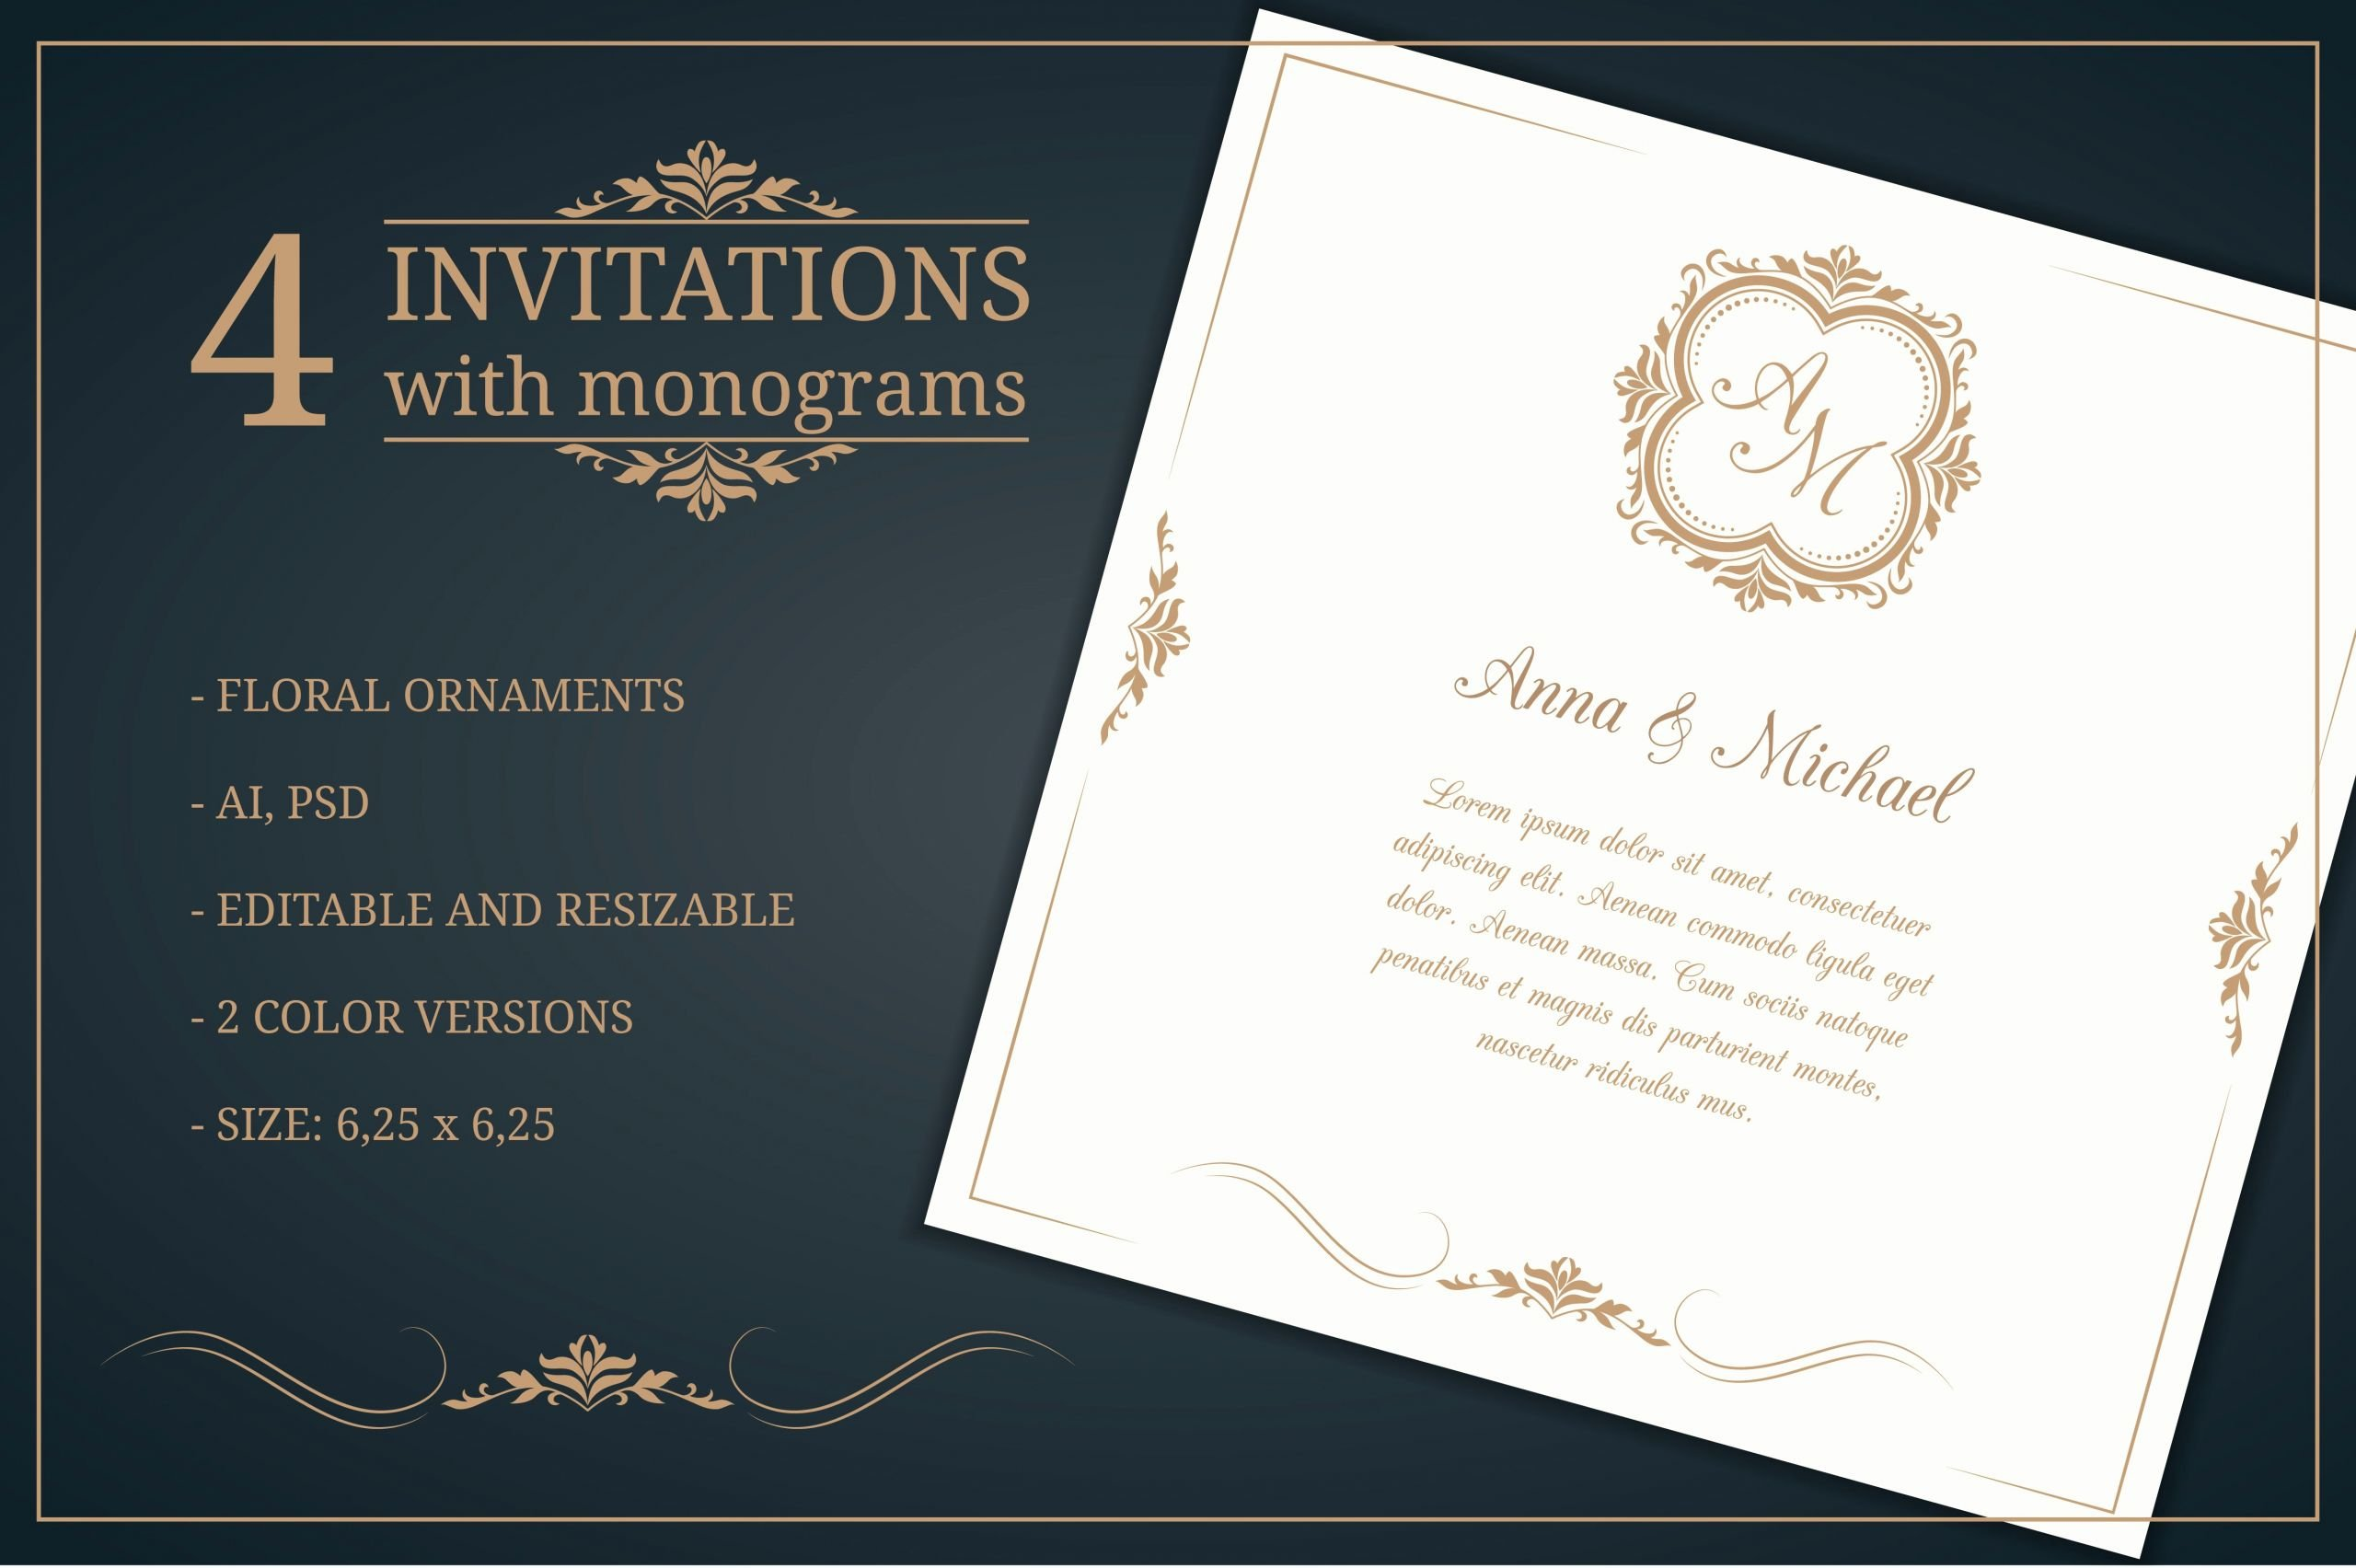 Wedding Invitation Wording Template New Wedding Invitations with Monograms Wedding Templates